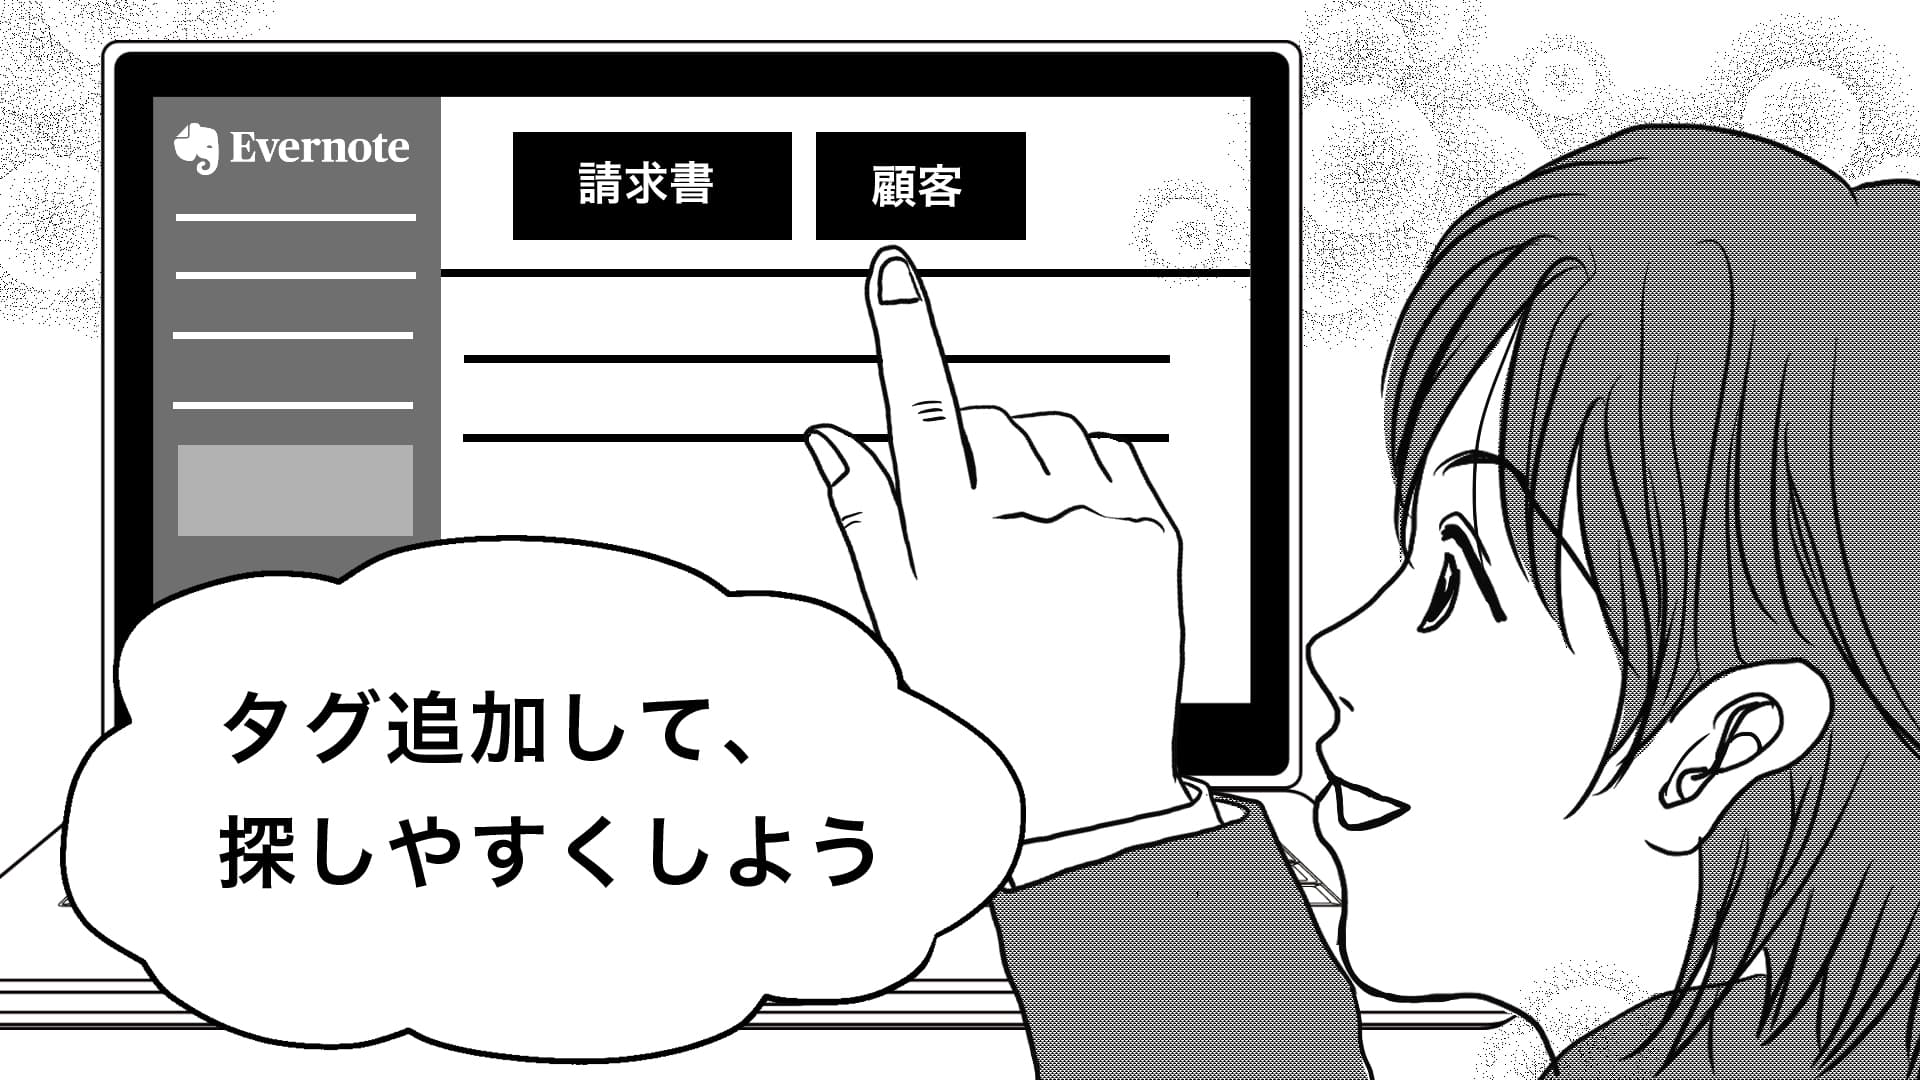 EvernoteでPDF検索をするときの注意点